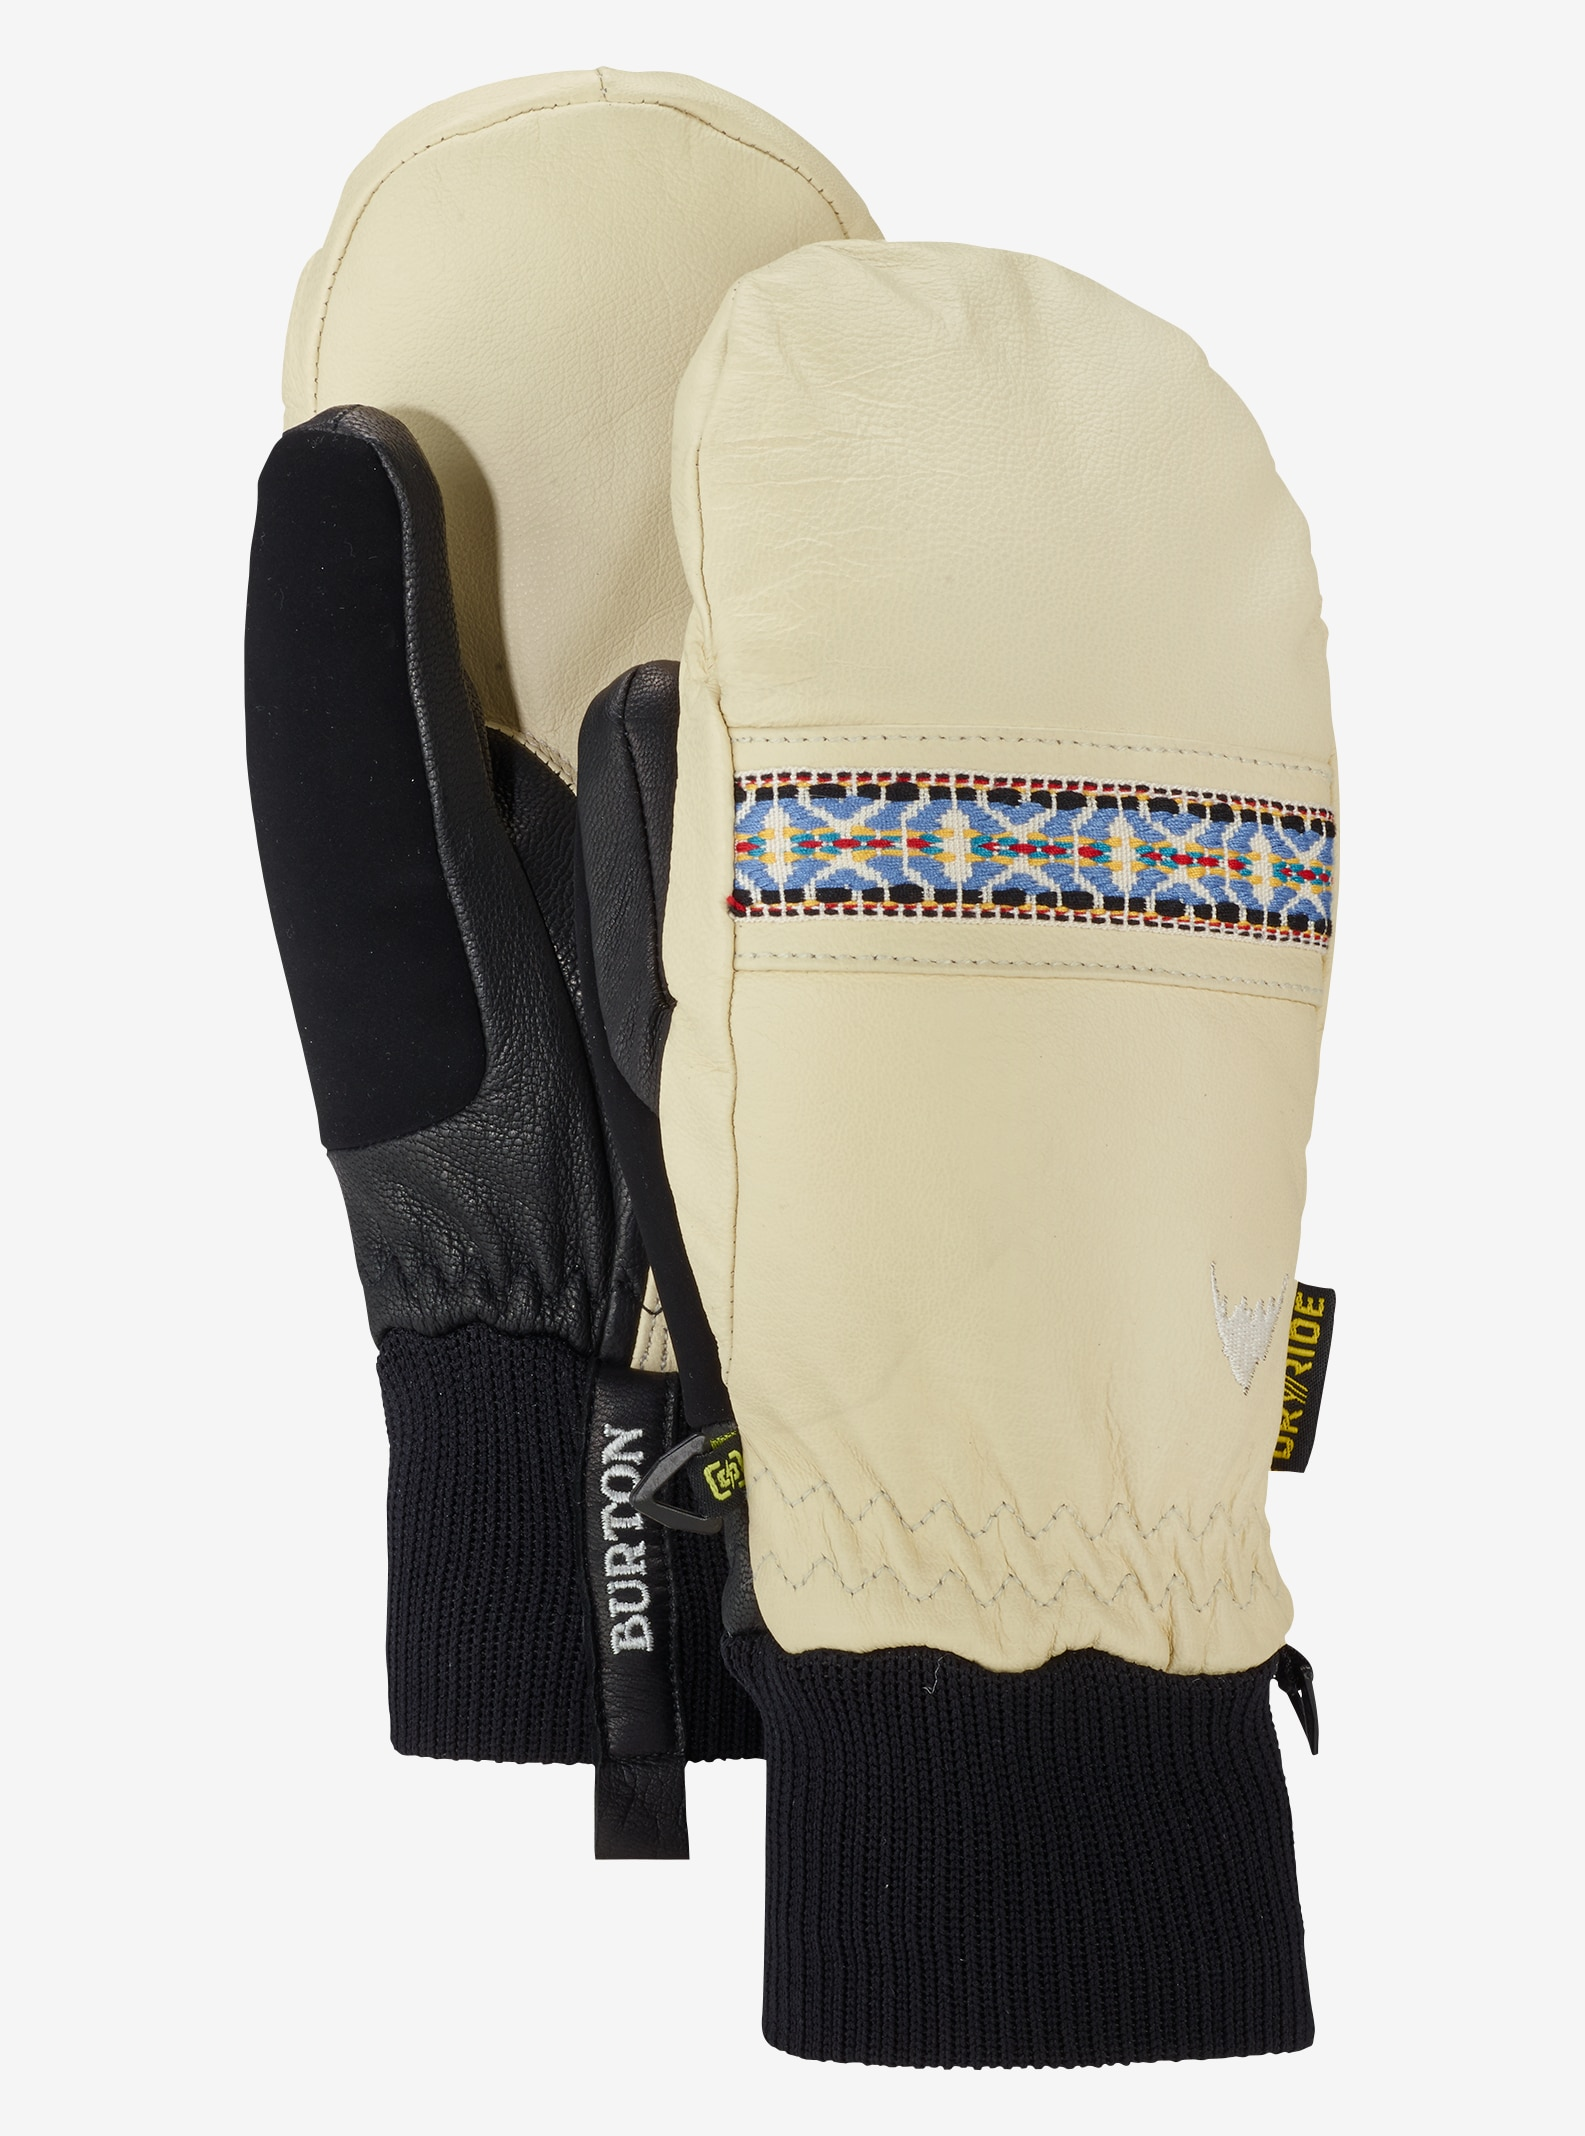 Women's Burton Free Range Mitt shown in Canvas